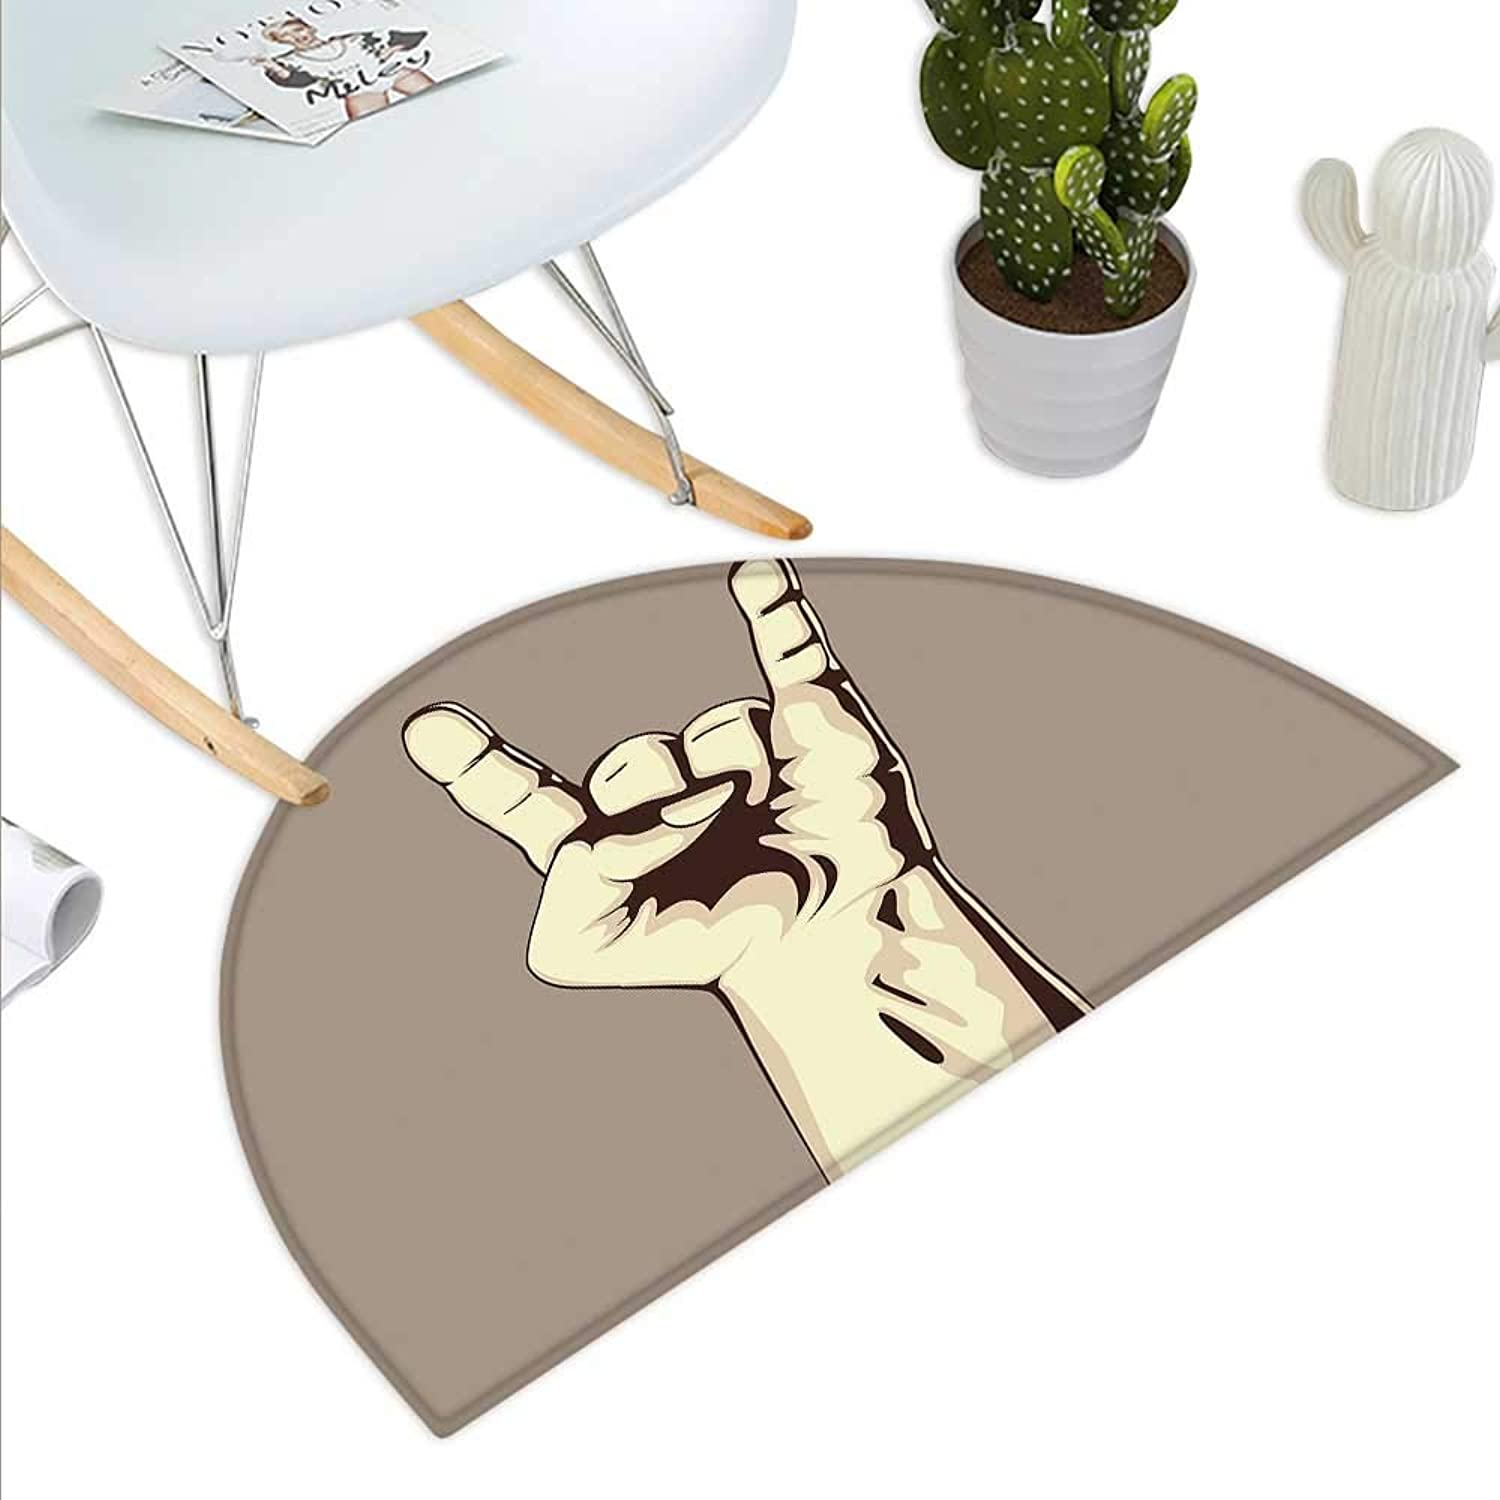 Rock Music Semicircle Doormat Devil Sign Vintage Symbol Illustration Hand Gesture Abstract Musical Elements Halfmoon doormats H 39.3  xD 59  Taupe Ivory